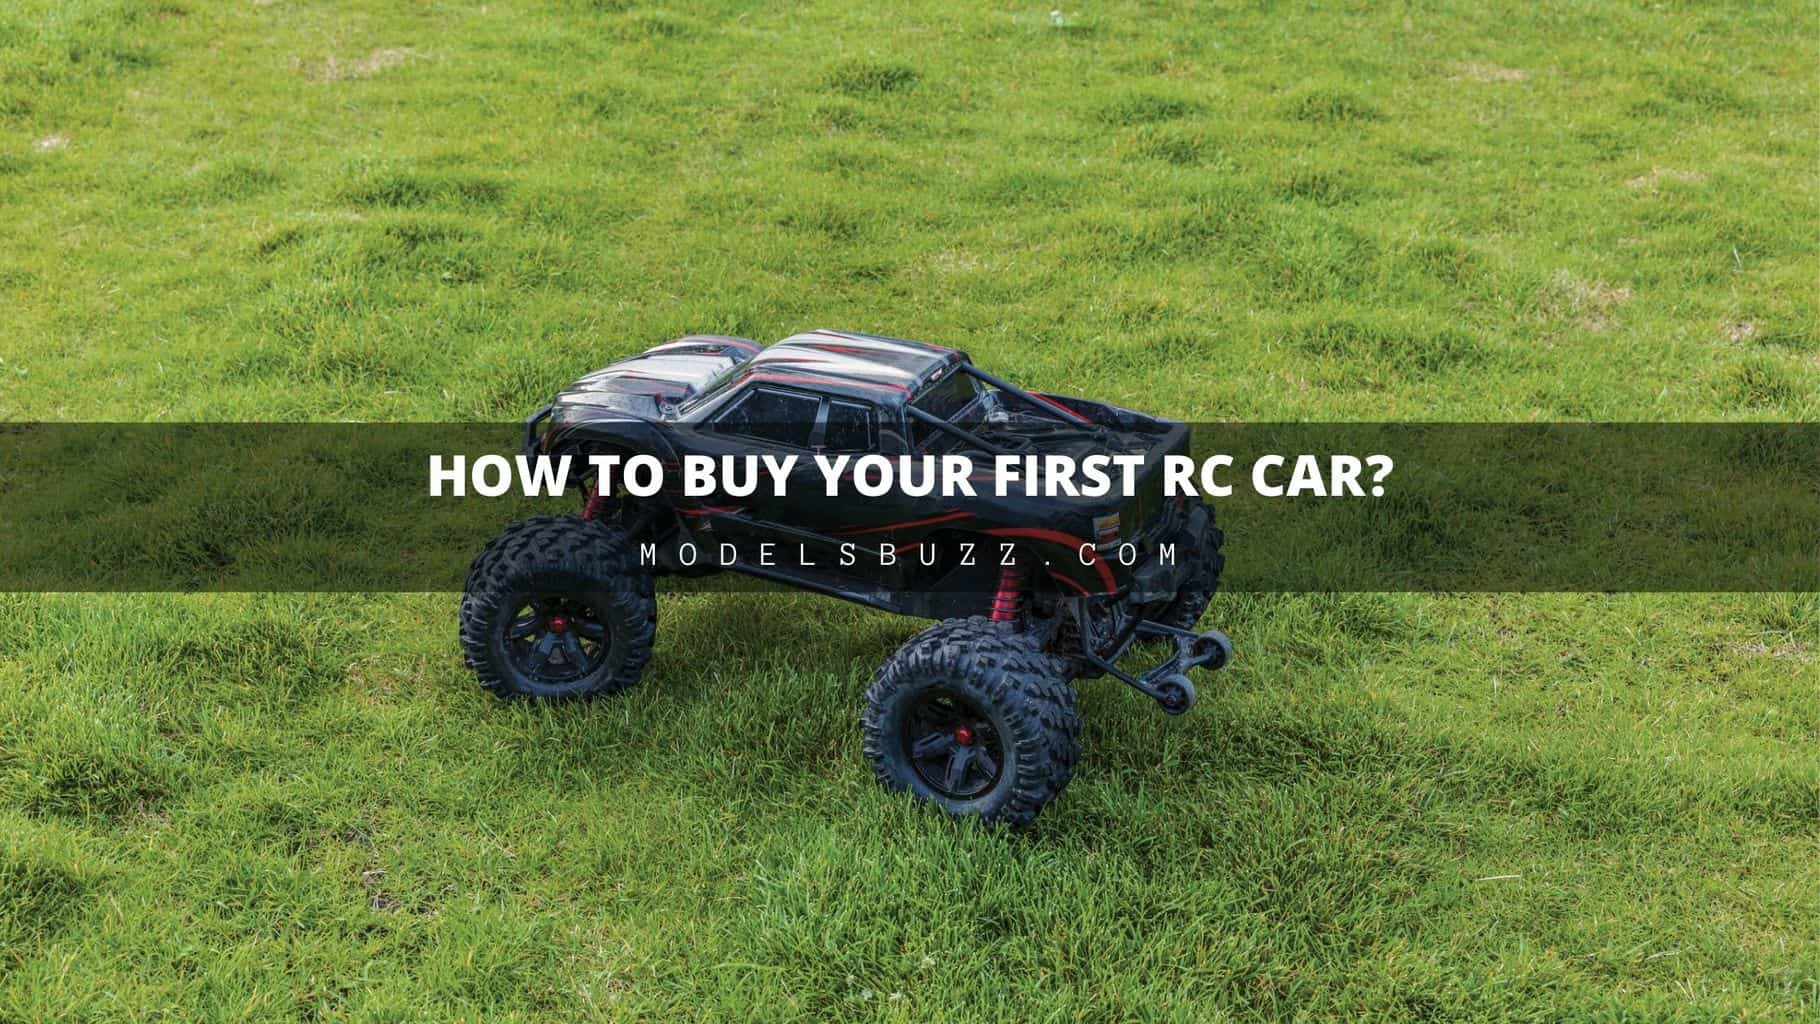 How To Buy Your First RC Car - beginners guide